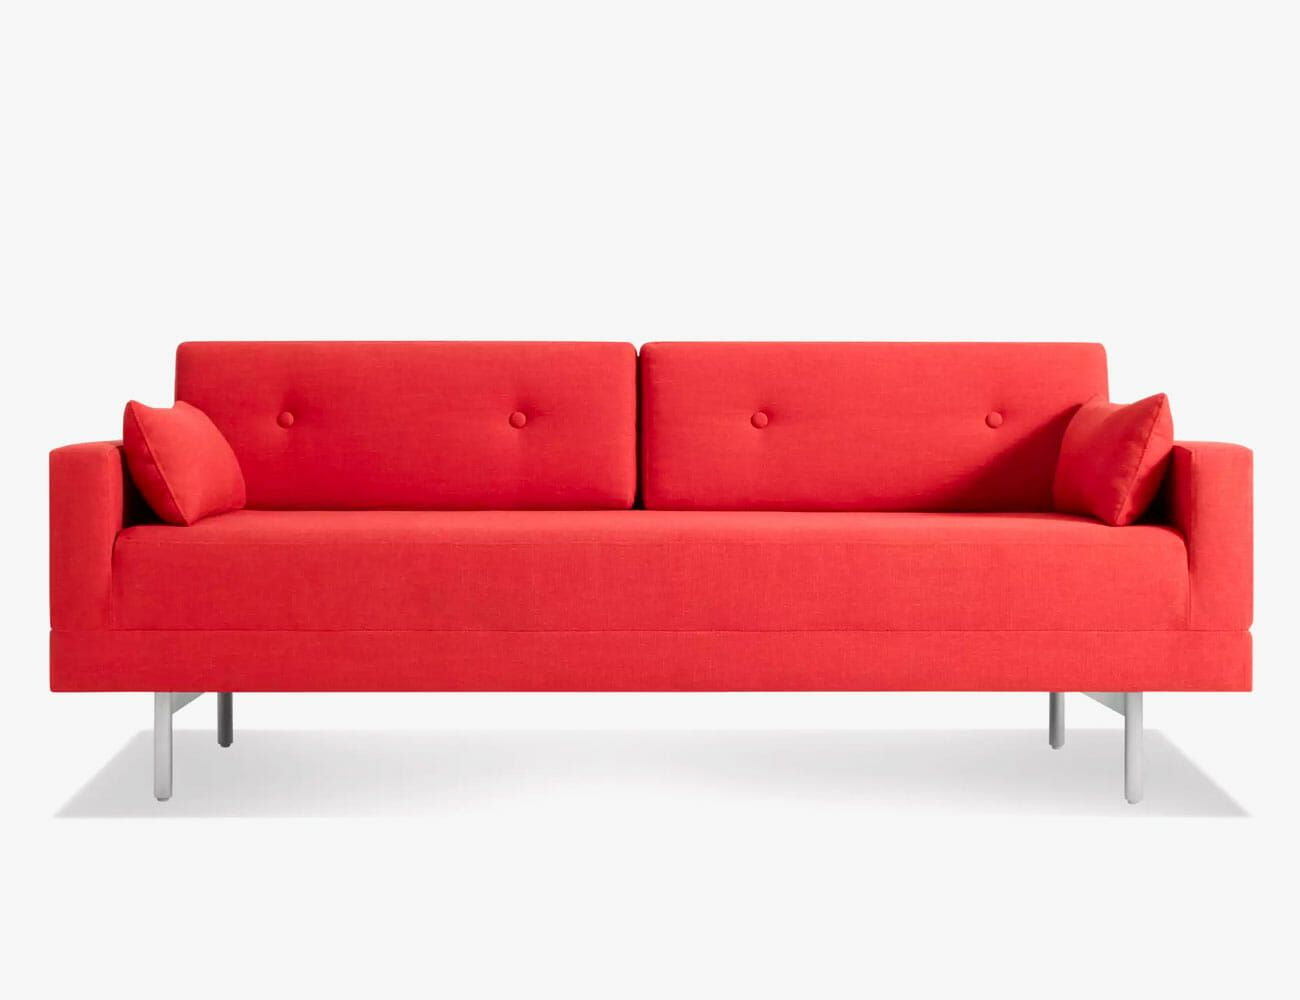 Pleasing The 16 Best Sofas And Couches You Can Buy In 2019 Gear Patrol Pdpeps Interior Chair Design Pdpepsorg